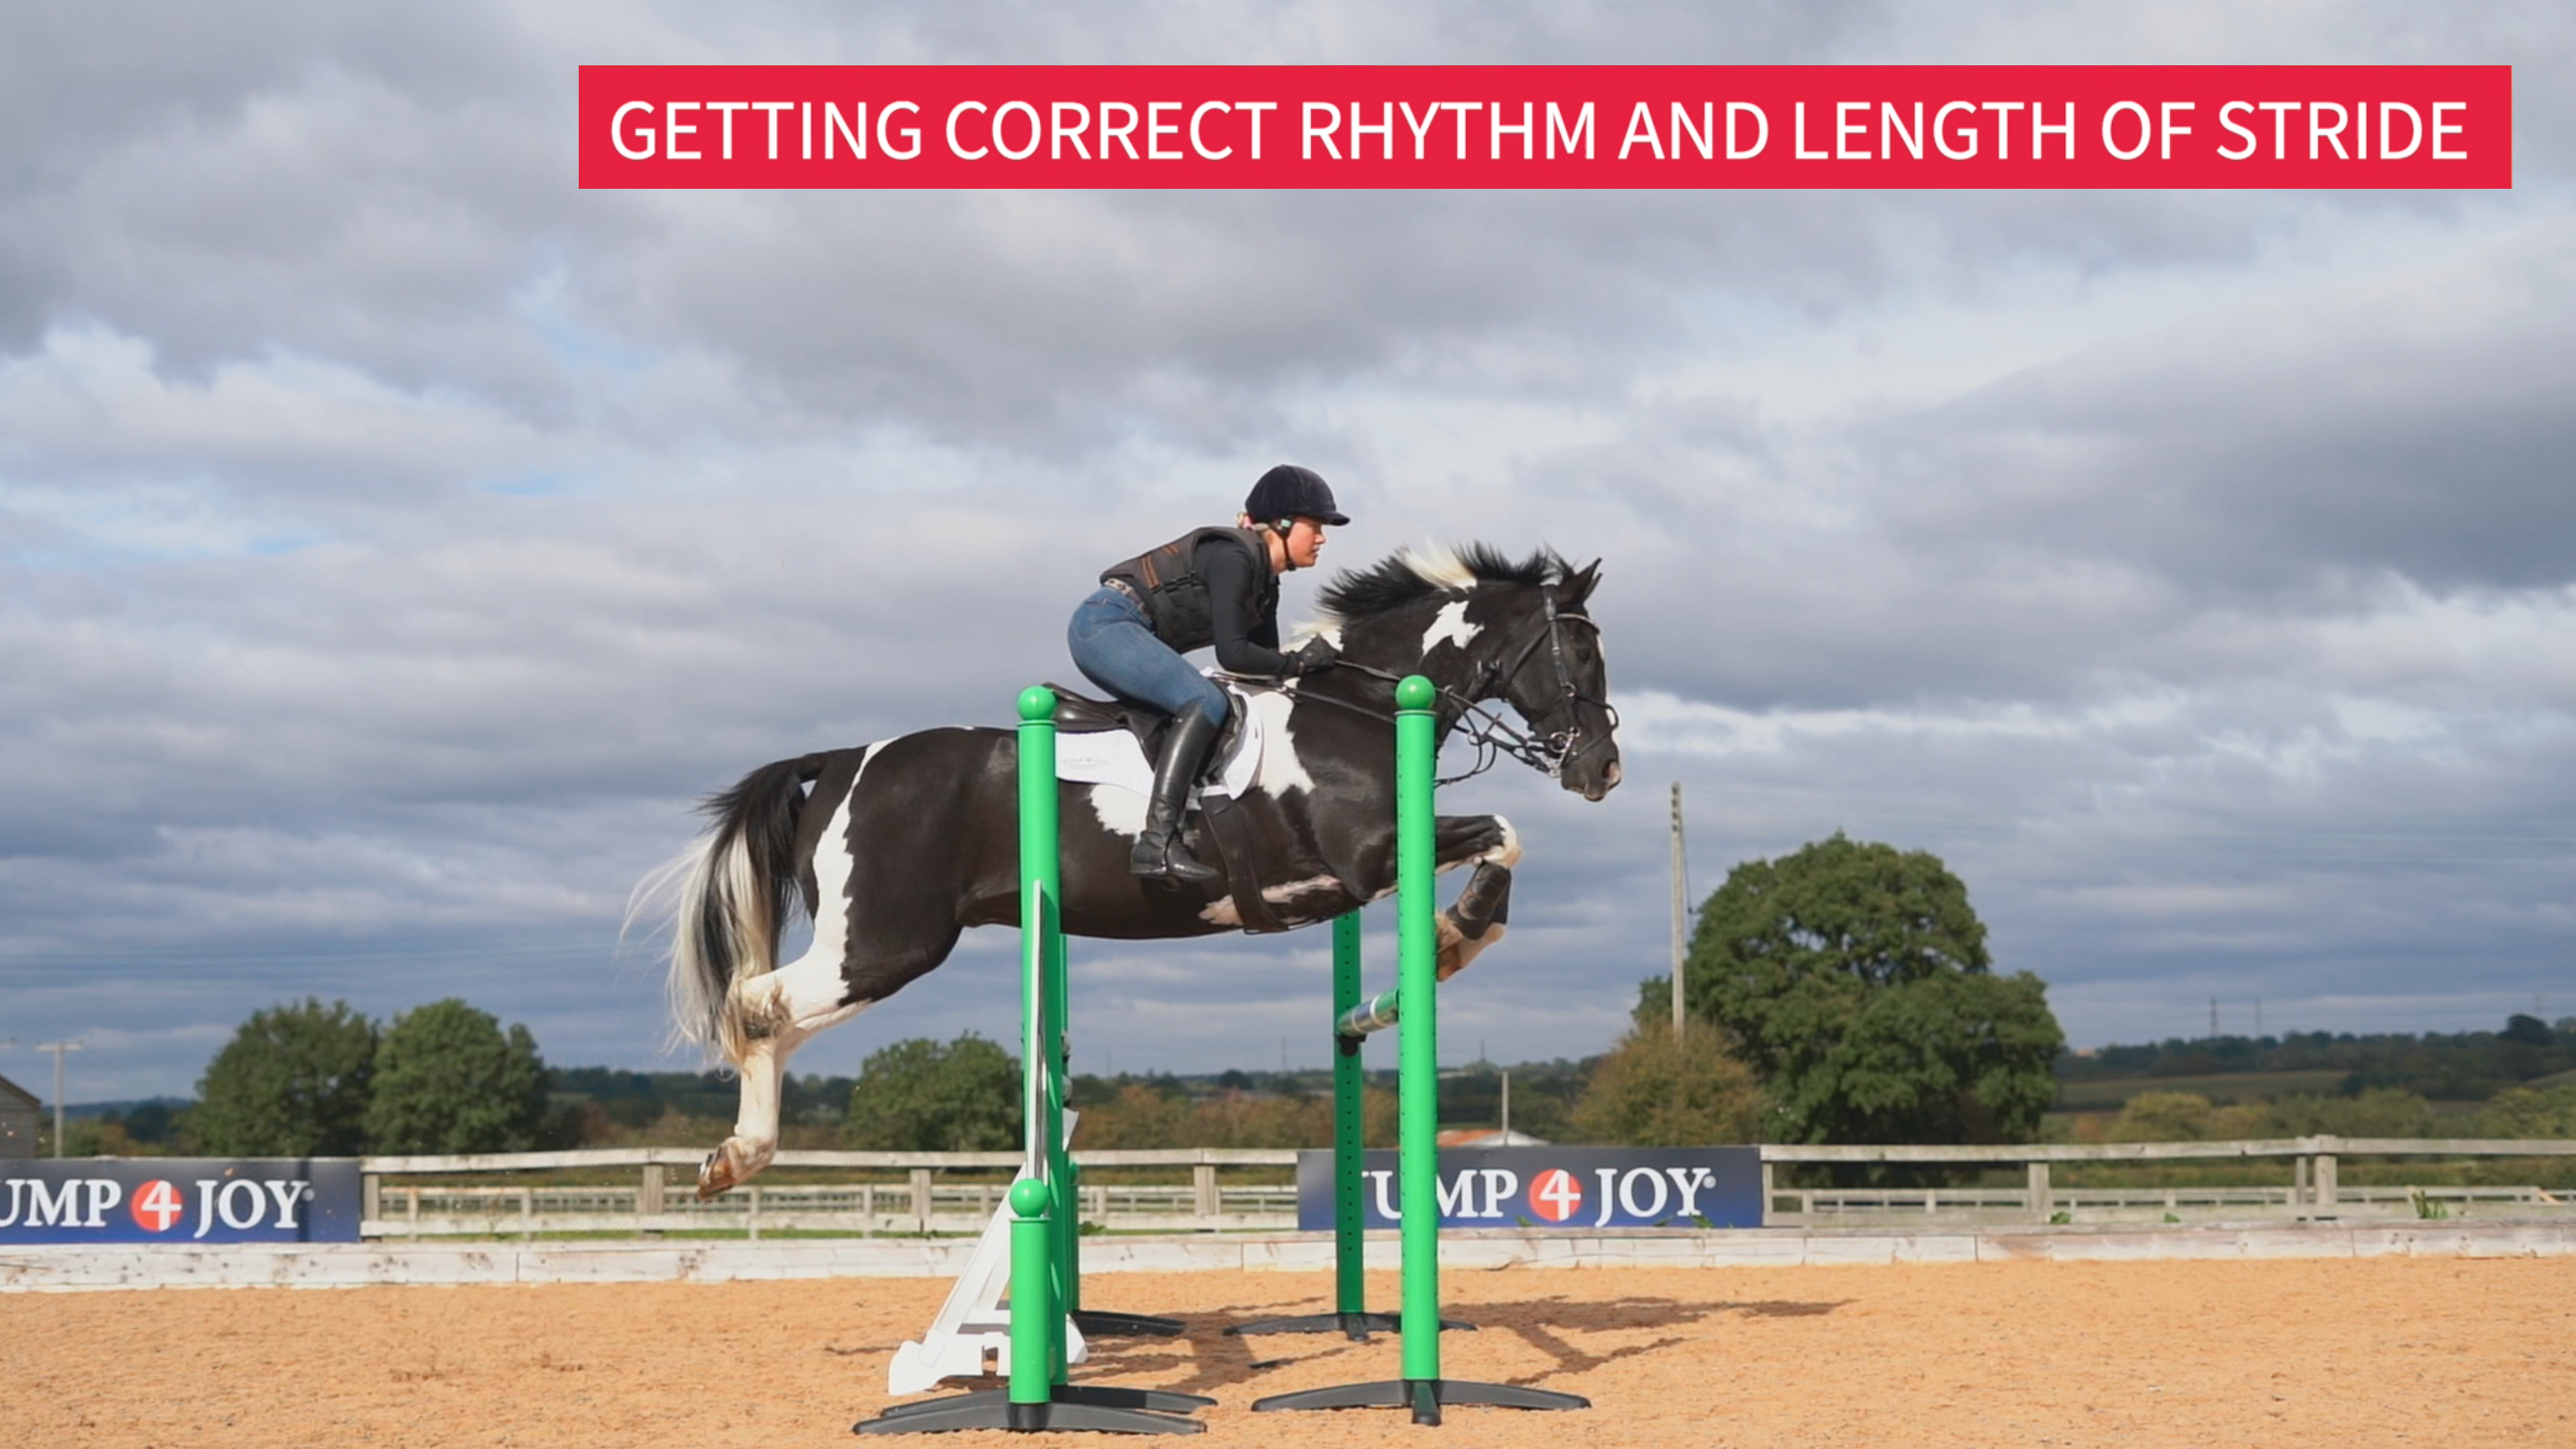 Getting Correct Rhythm and Length of Stride